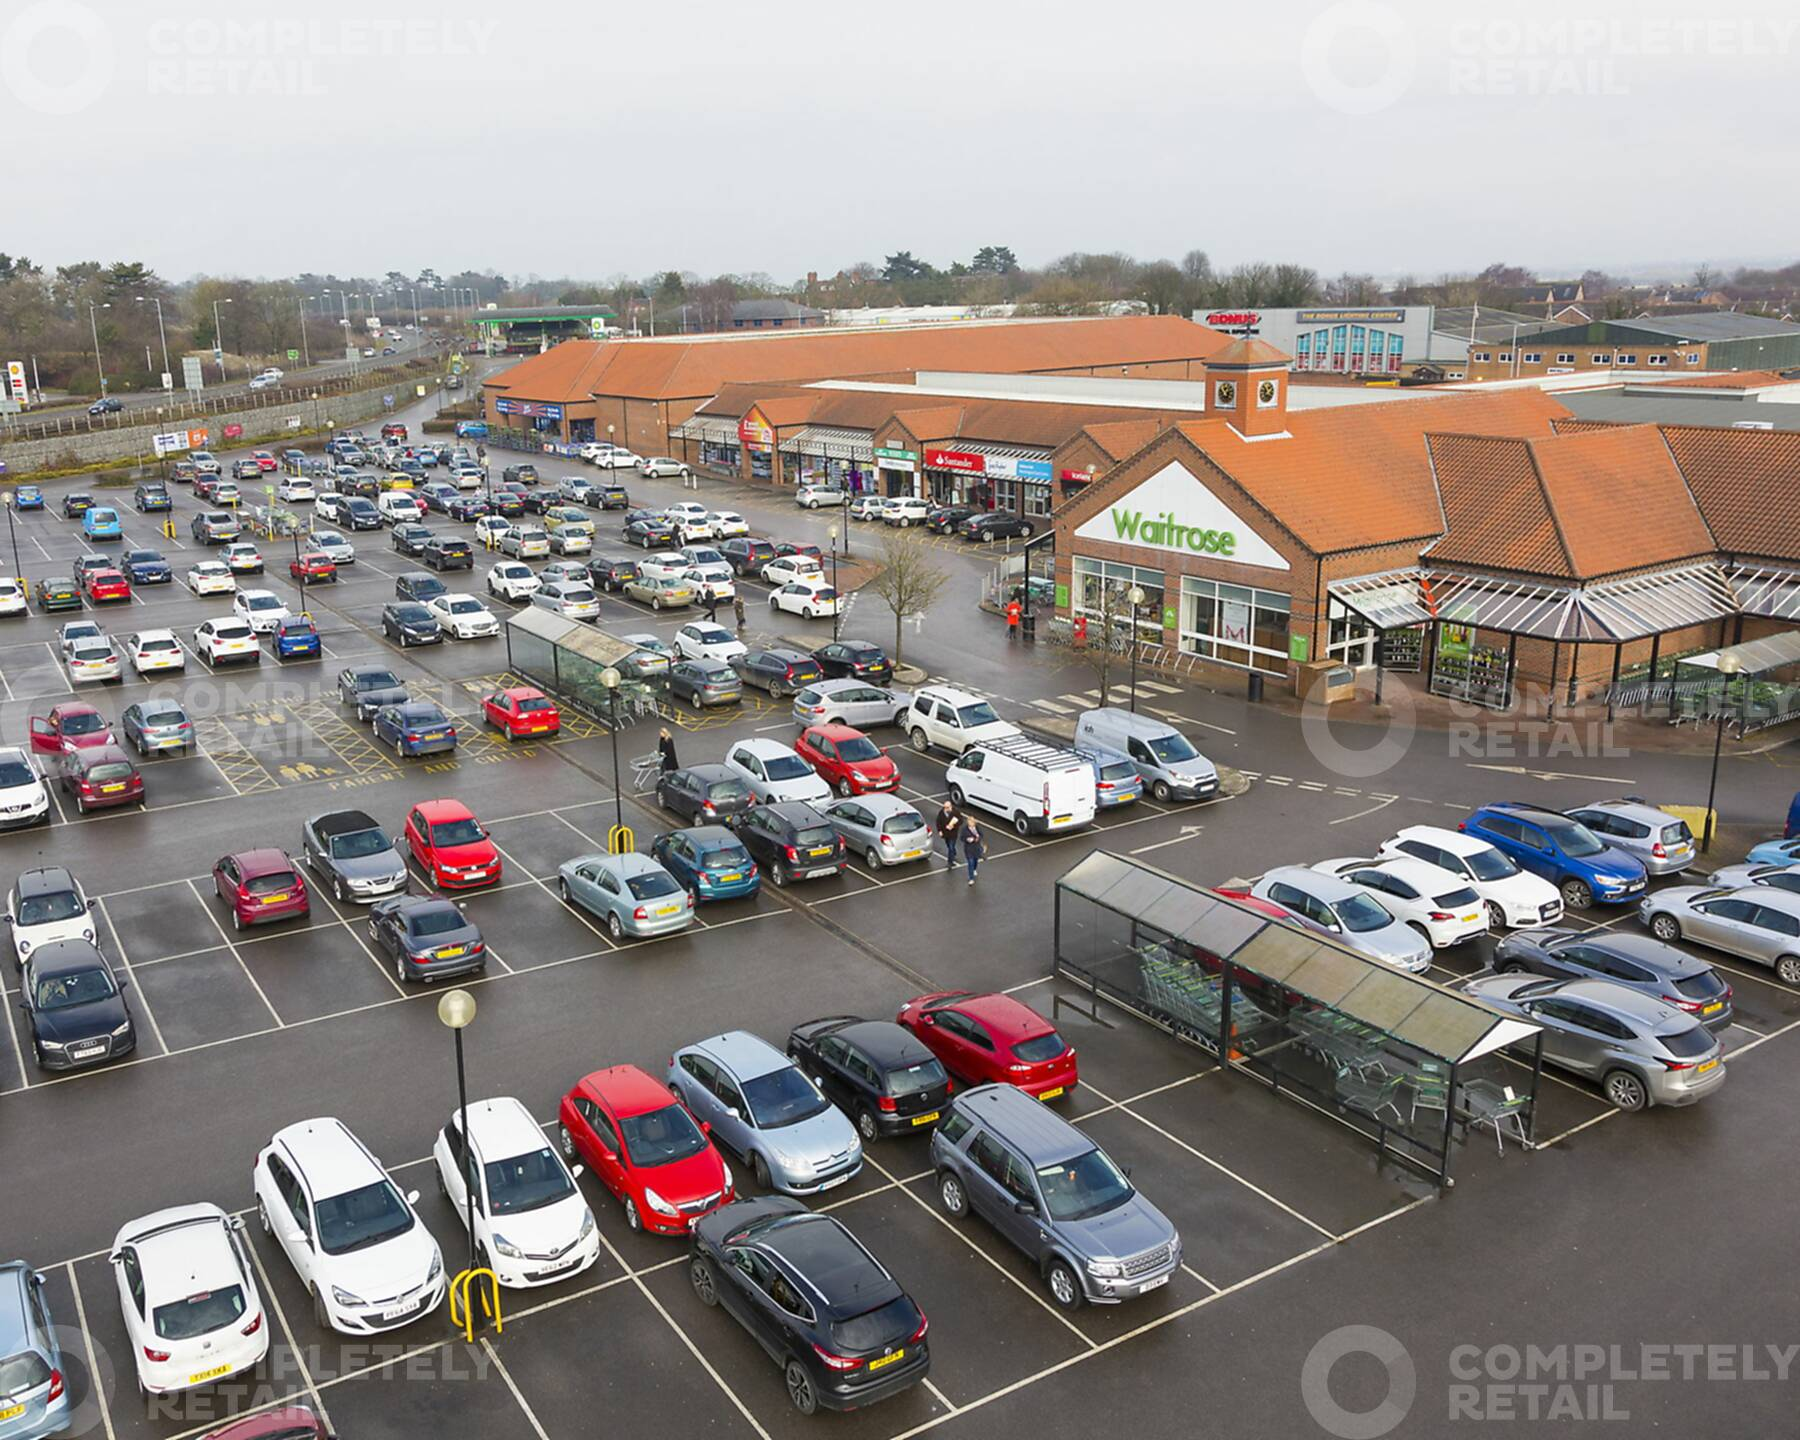 Willerby Shopping Park